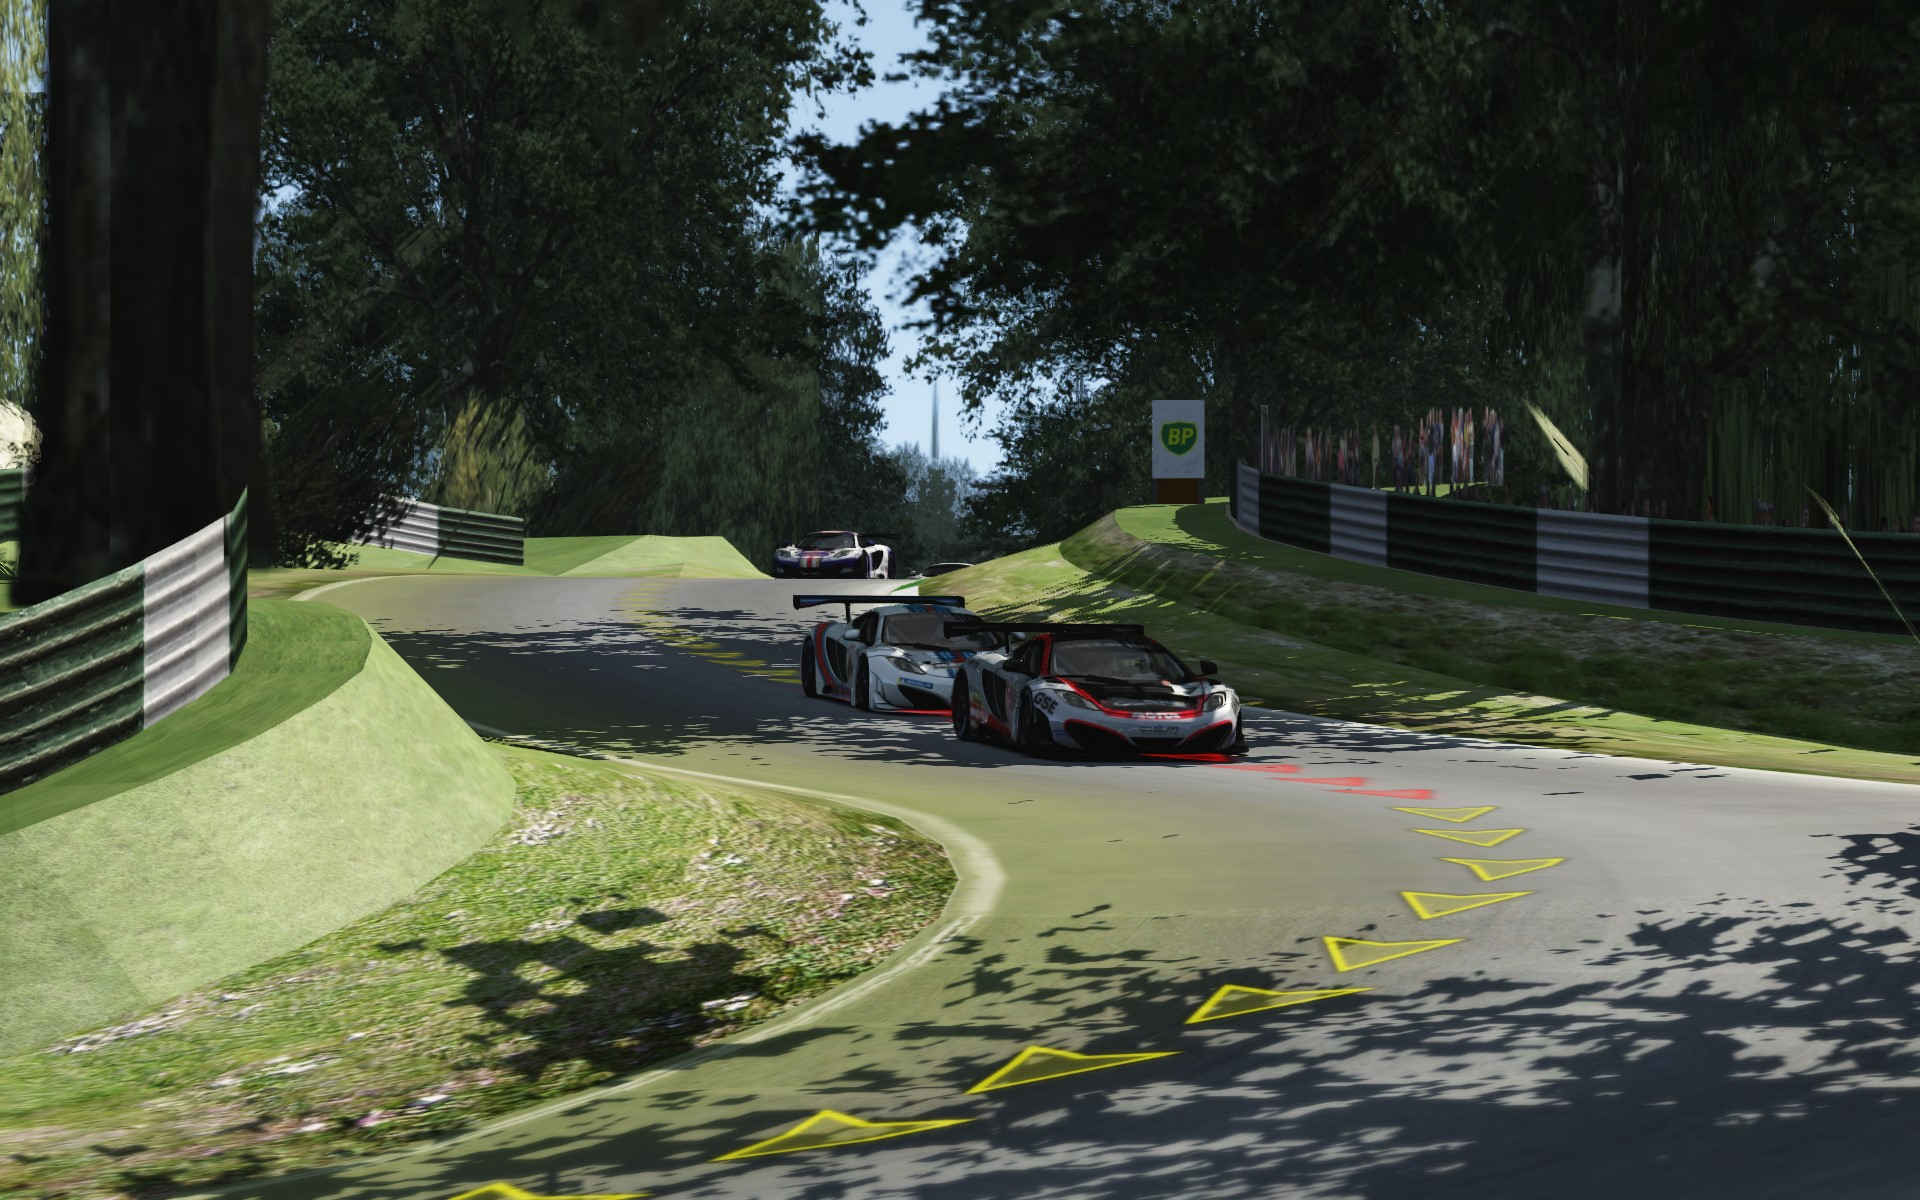 Screenshot_mclaren_mp412c_gt3_cadwell_21-6-115-15-27-17.jpg